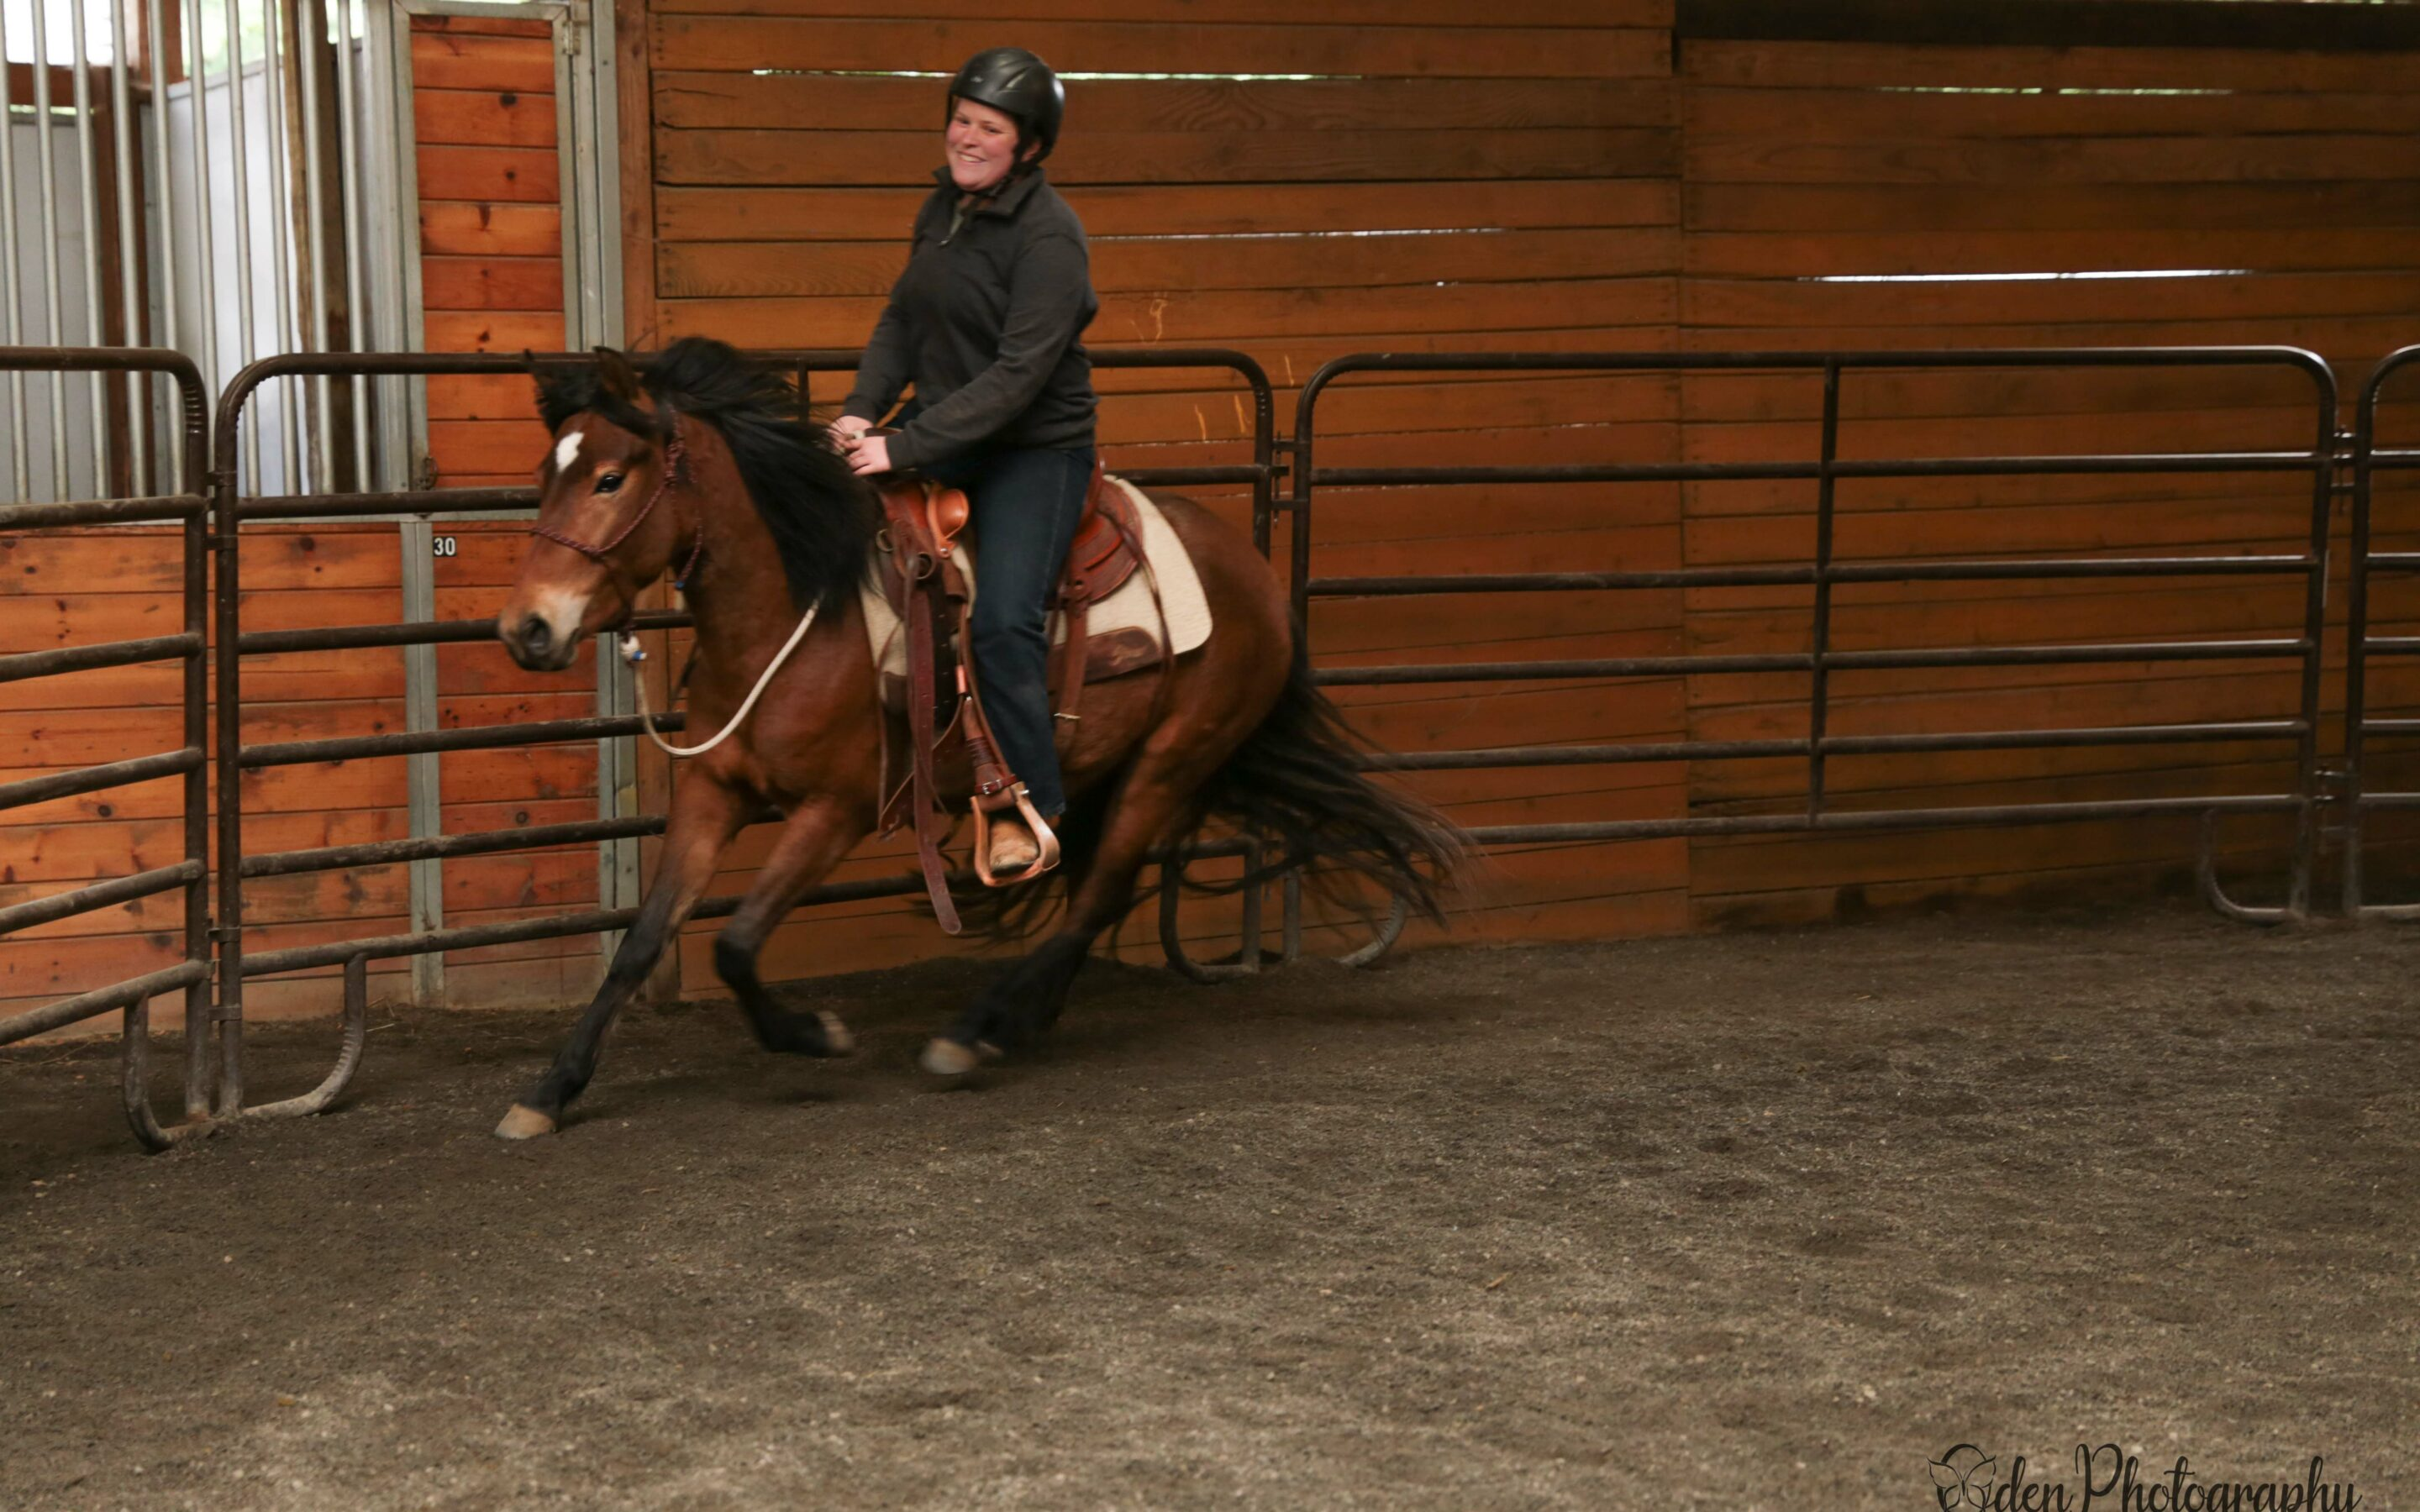 Barb is a Riding Horse!